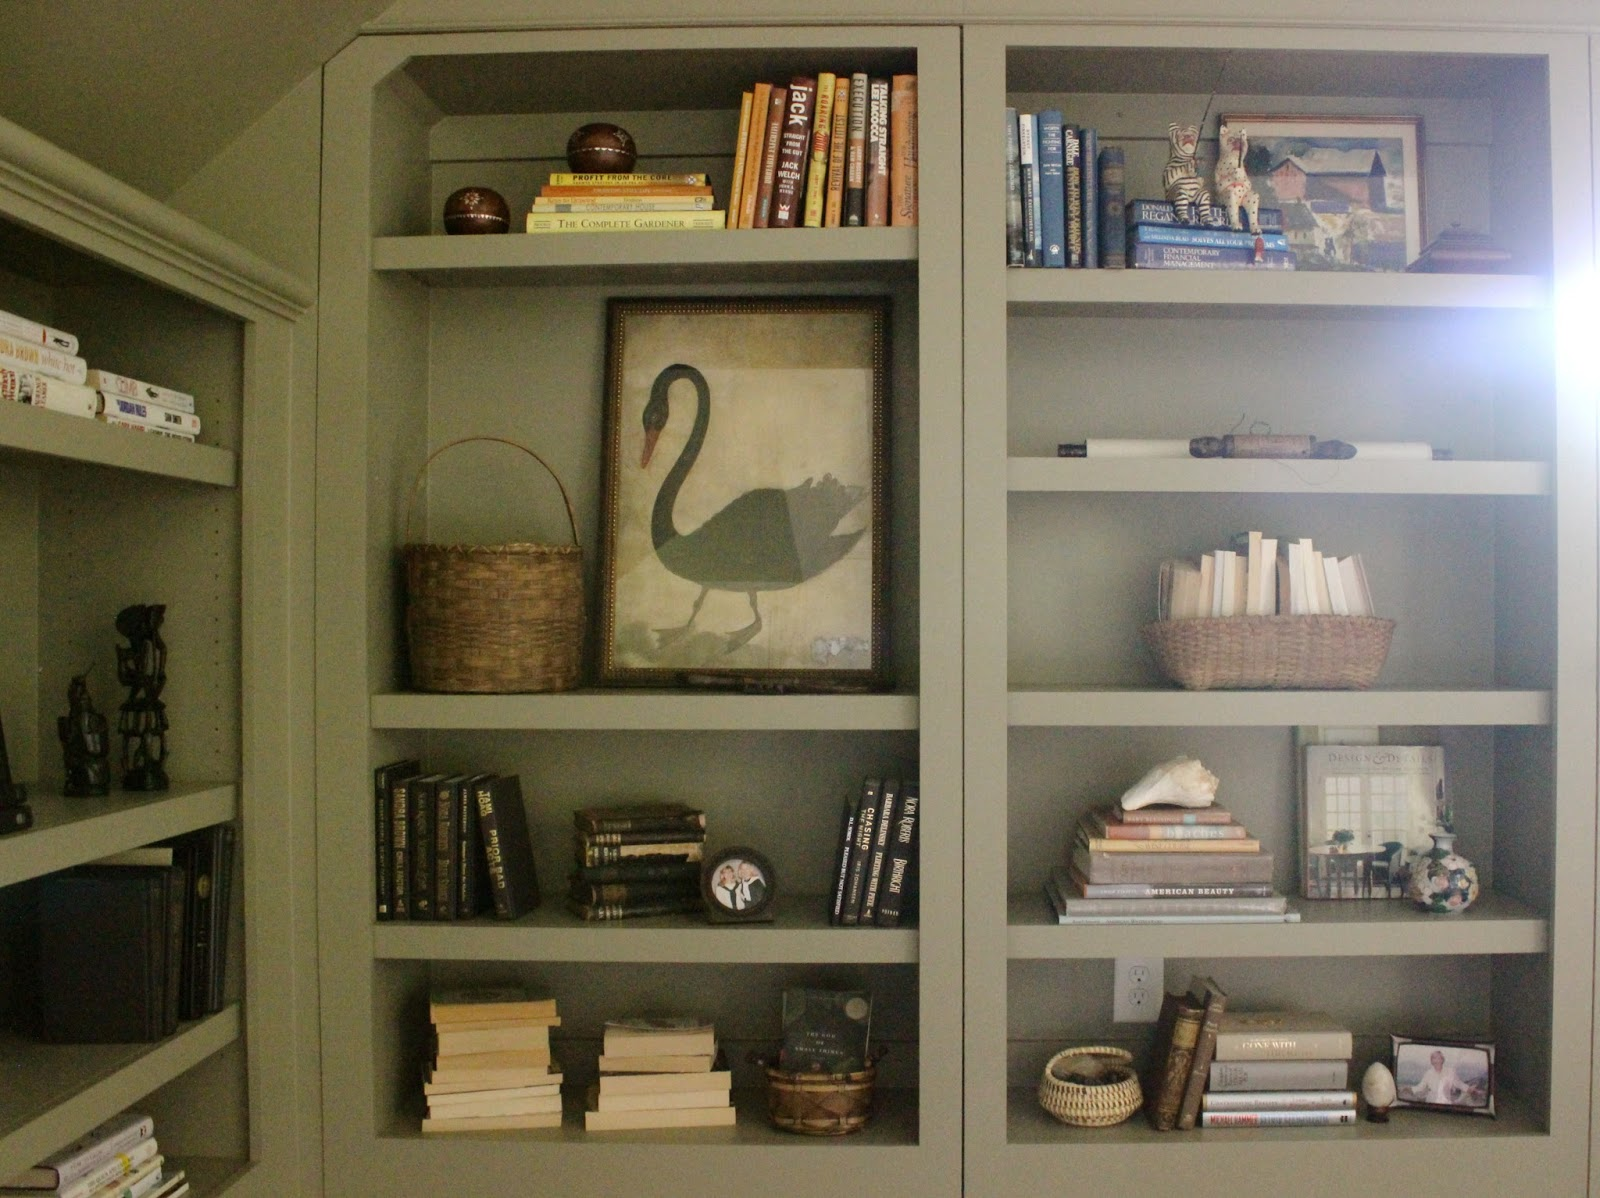 styling bookcases 101 design indulgence - Styling Bookcases